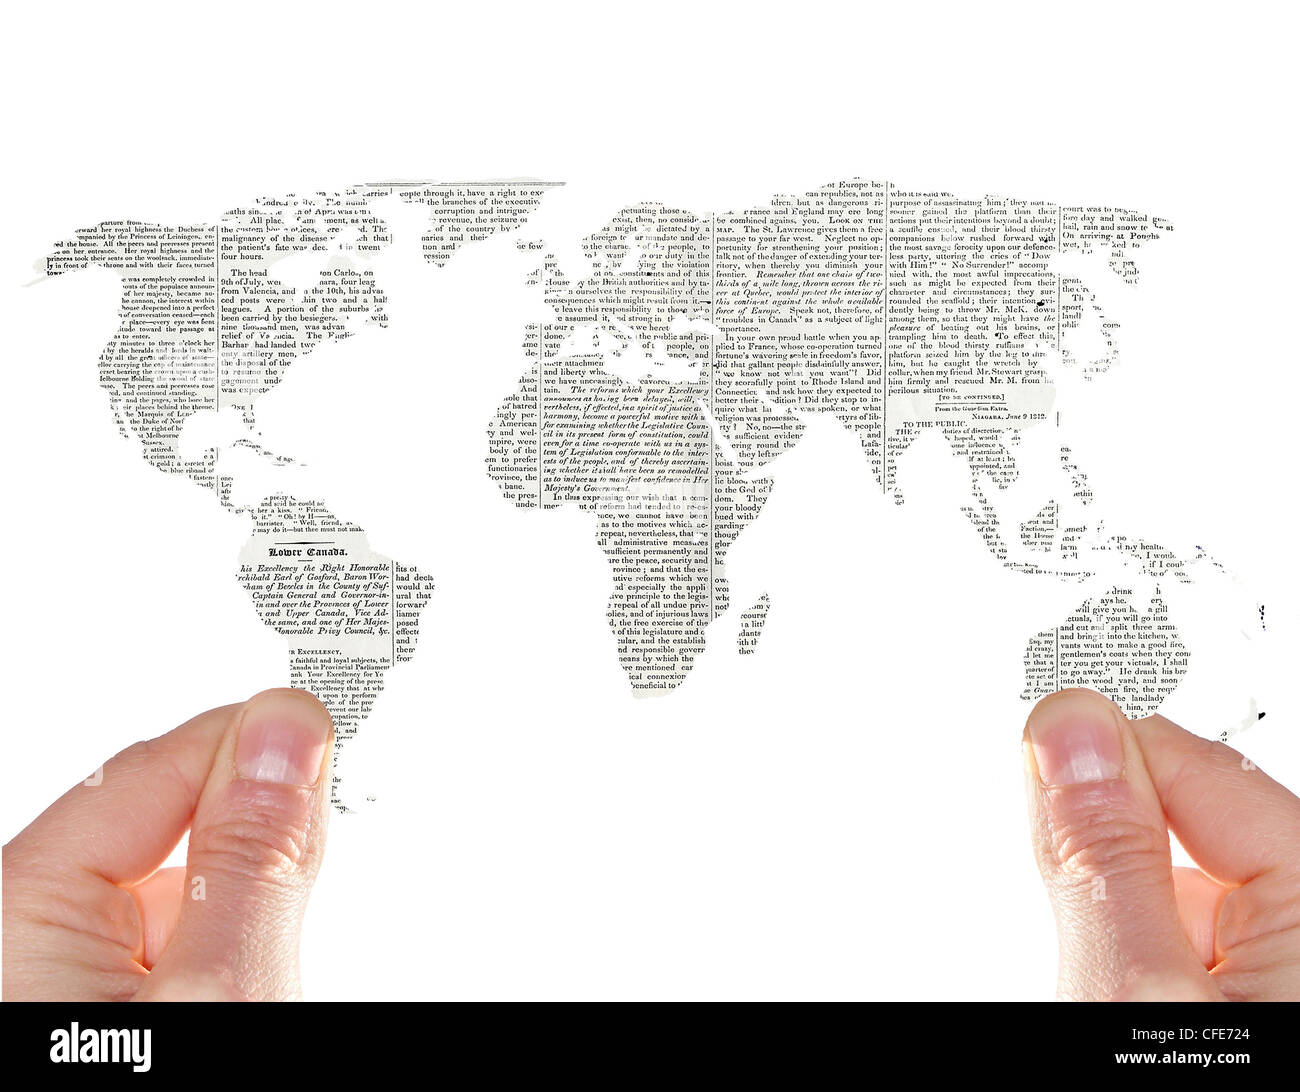 Hands show a newspaper world map stock photo 43953452 alamy hands show a newspaper world map gumiabroncs Image collections